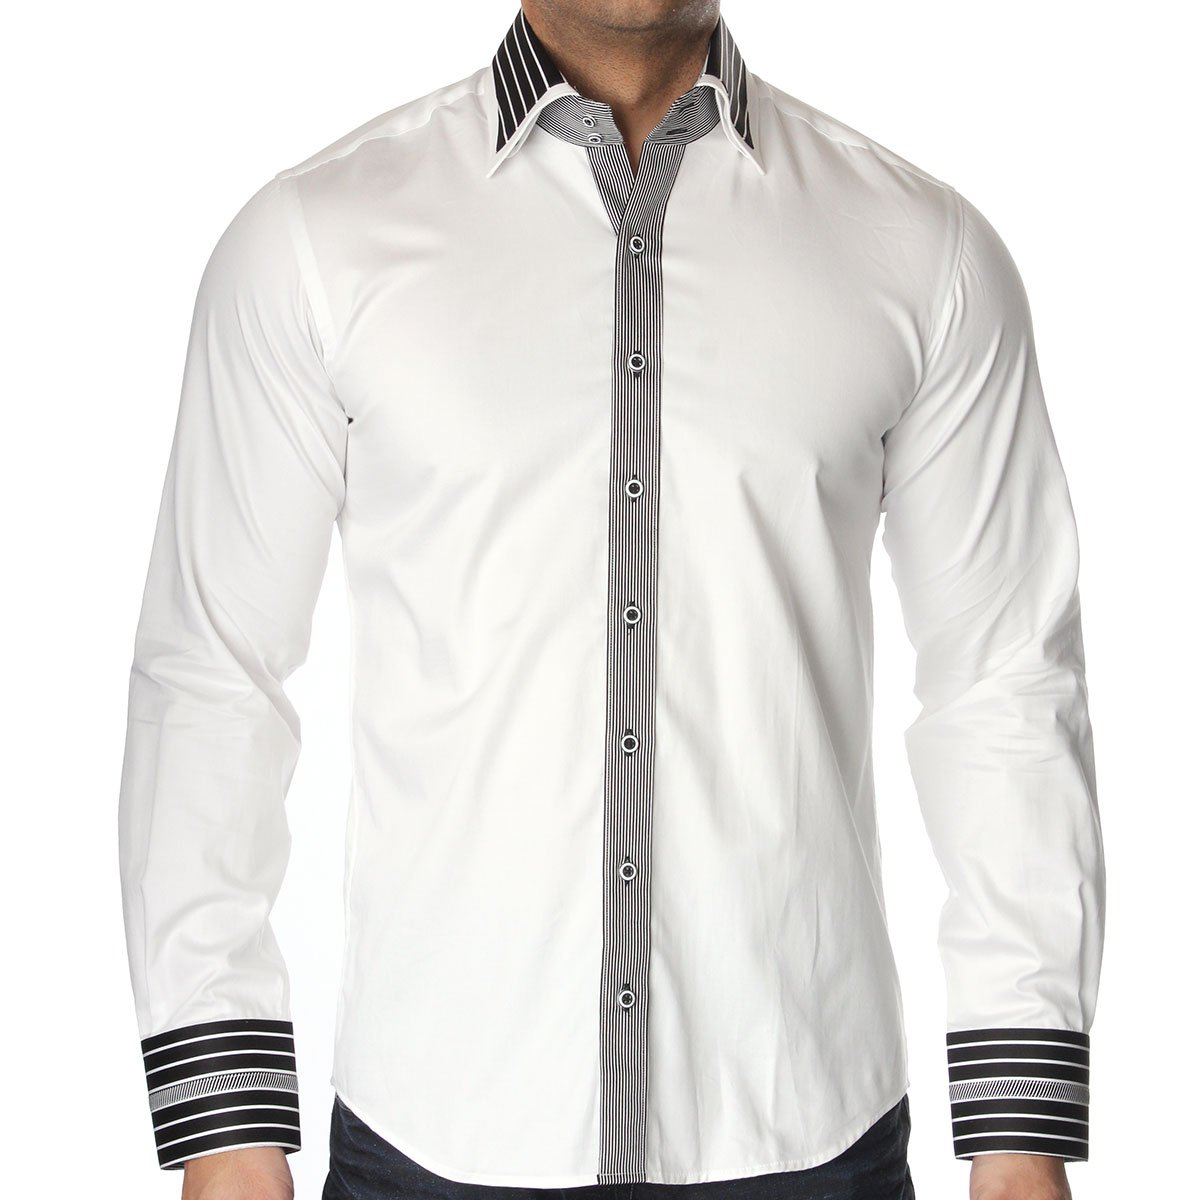 Claudio Lugli Cp5761 Shirt Various Colours Amp Sizes Available Bnwt Ebay